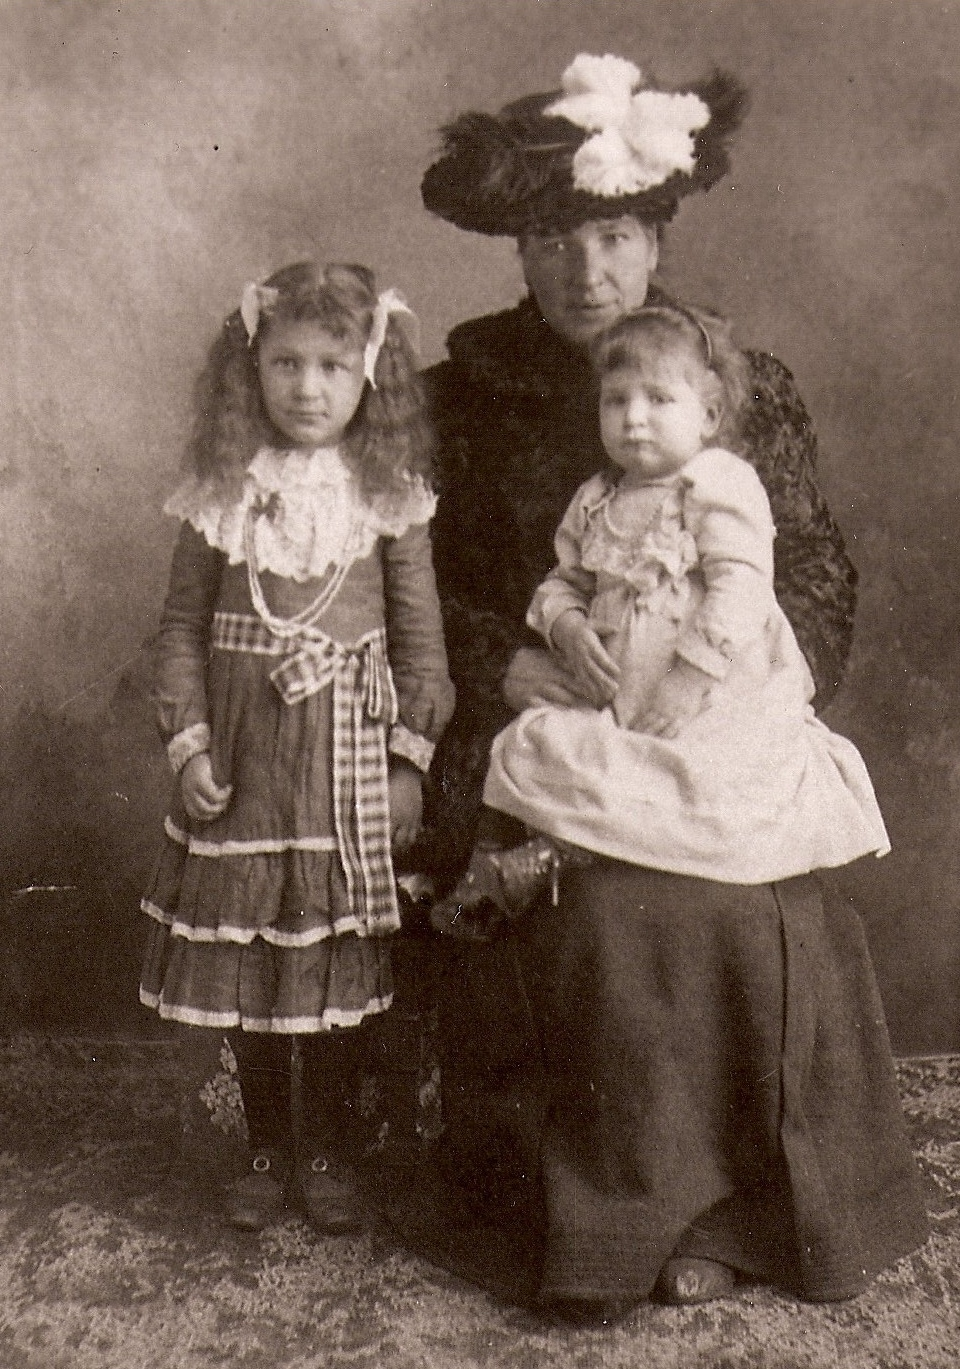 Tune in tomorrow at noon to Hoosier History Live to hear about  my new book America's Femme Fatale about serial killer Belle Gunness